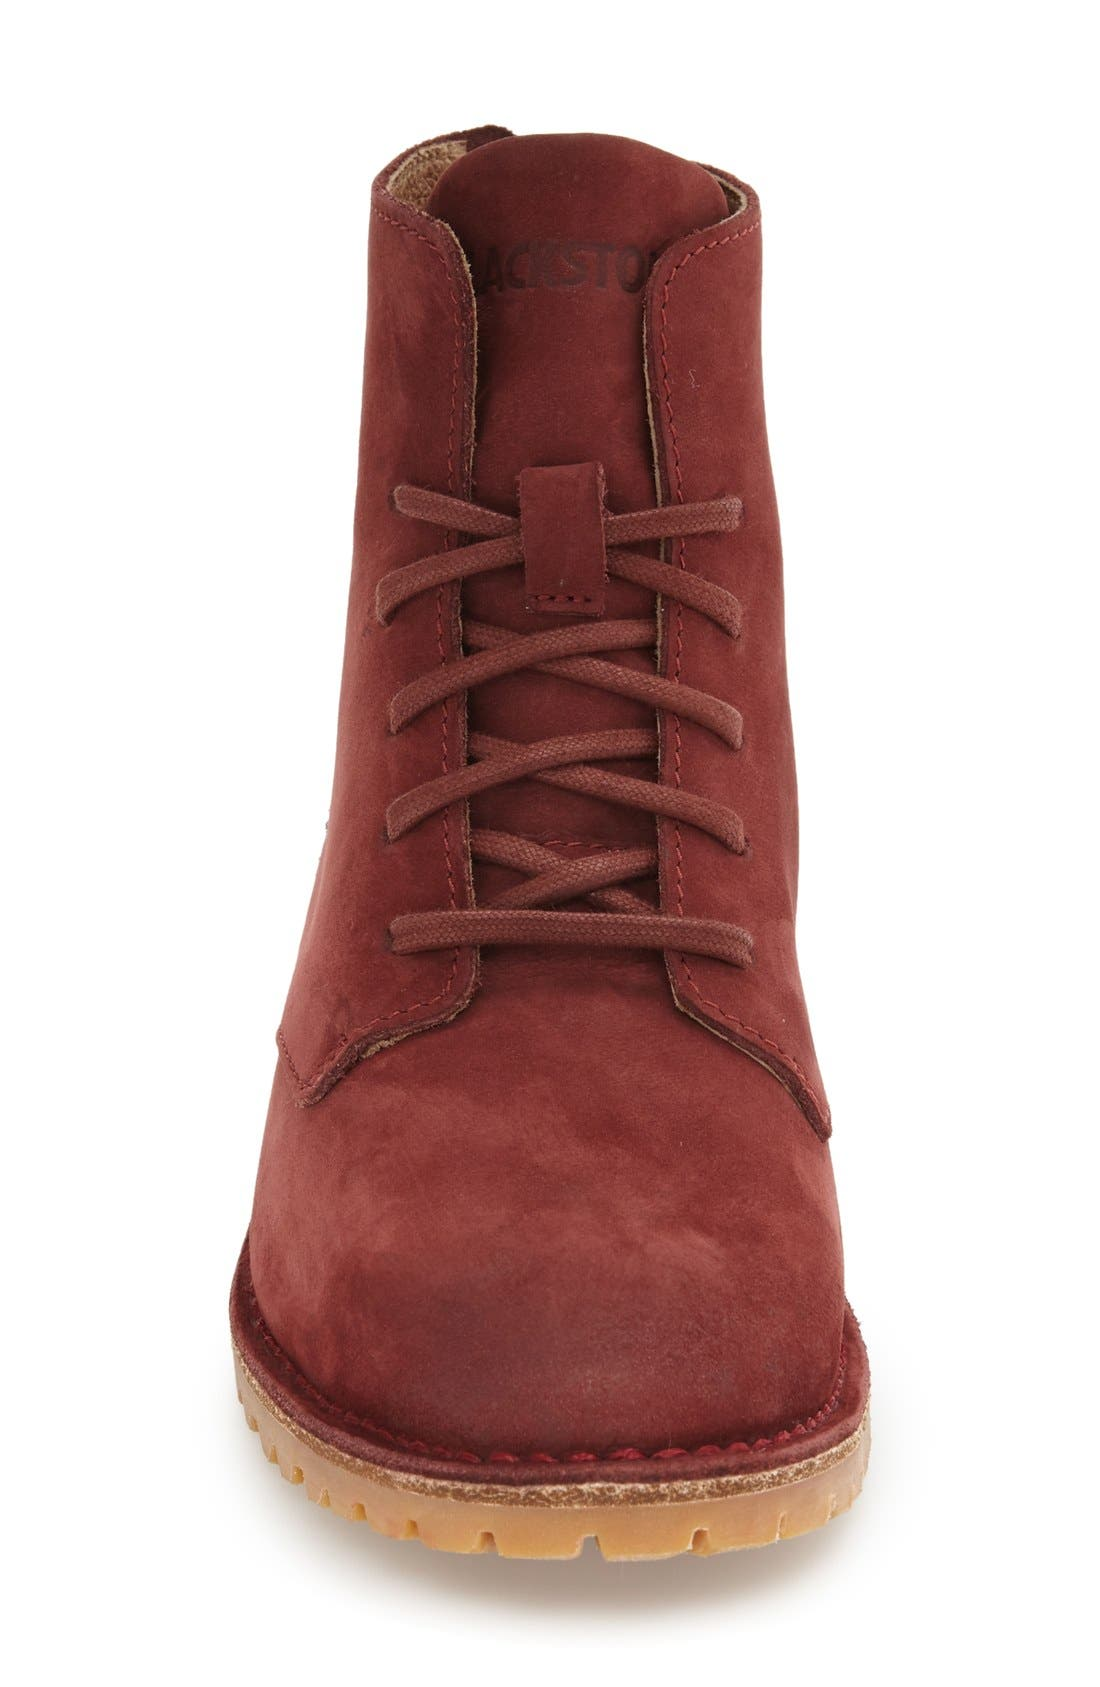 'KL67' Lace-Up Boot,                             Alternate thumbnail 3, color,                             Cordovan Nubuck Leather